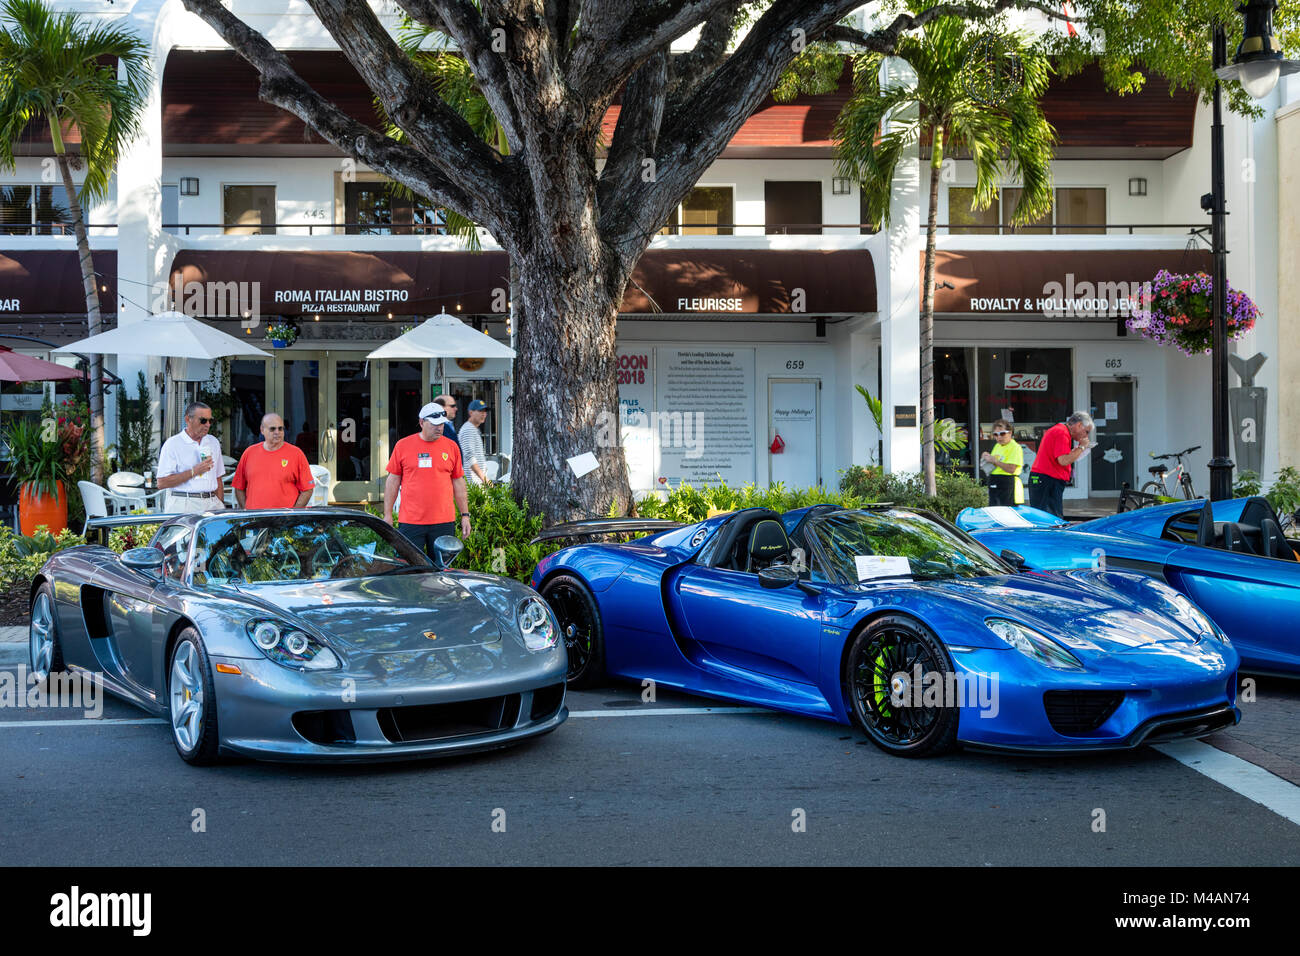 Ferrari sports cars on display at 'Cars on 5th' autoshow, Naples, Florida, USA - Stock Image